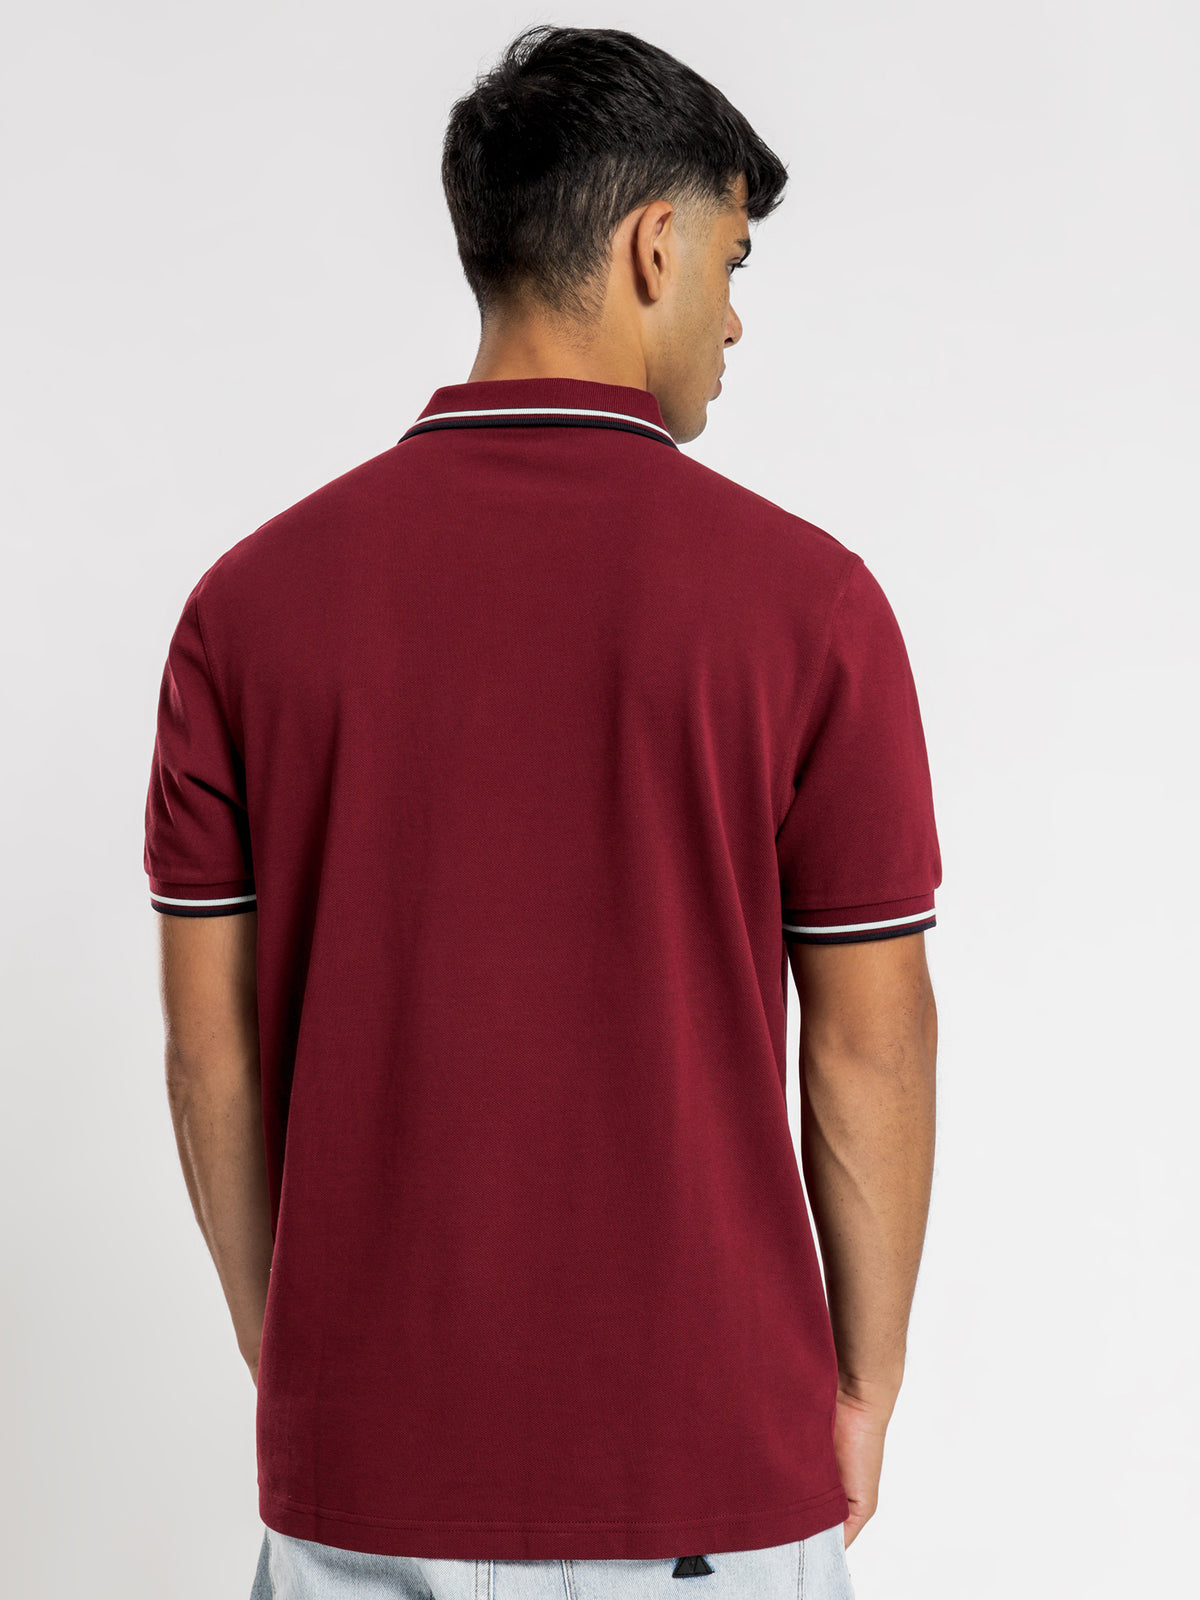 Twin Tripped Fred Perry Shirt in Burgundy